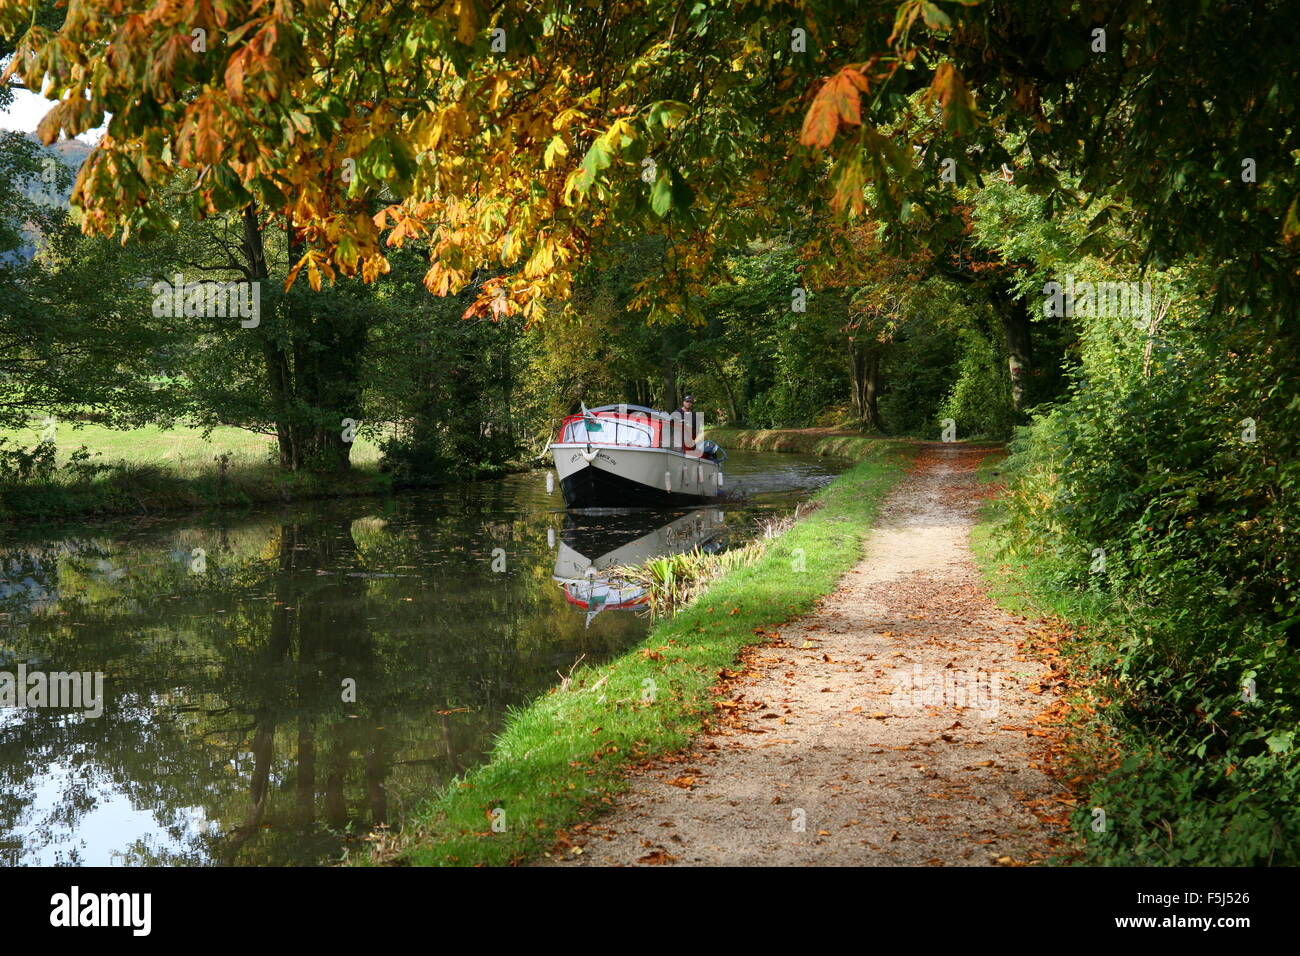 Boating on Monmouthshire and Brecon Canal in Autumn - Stock Image